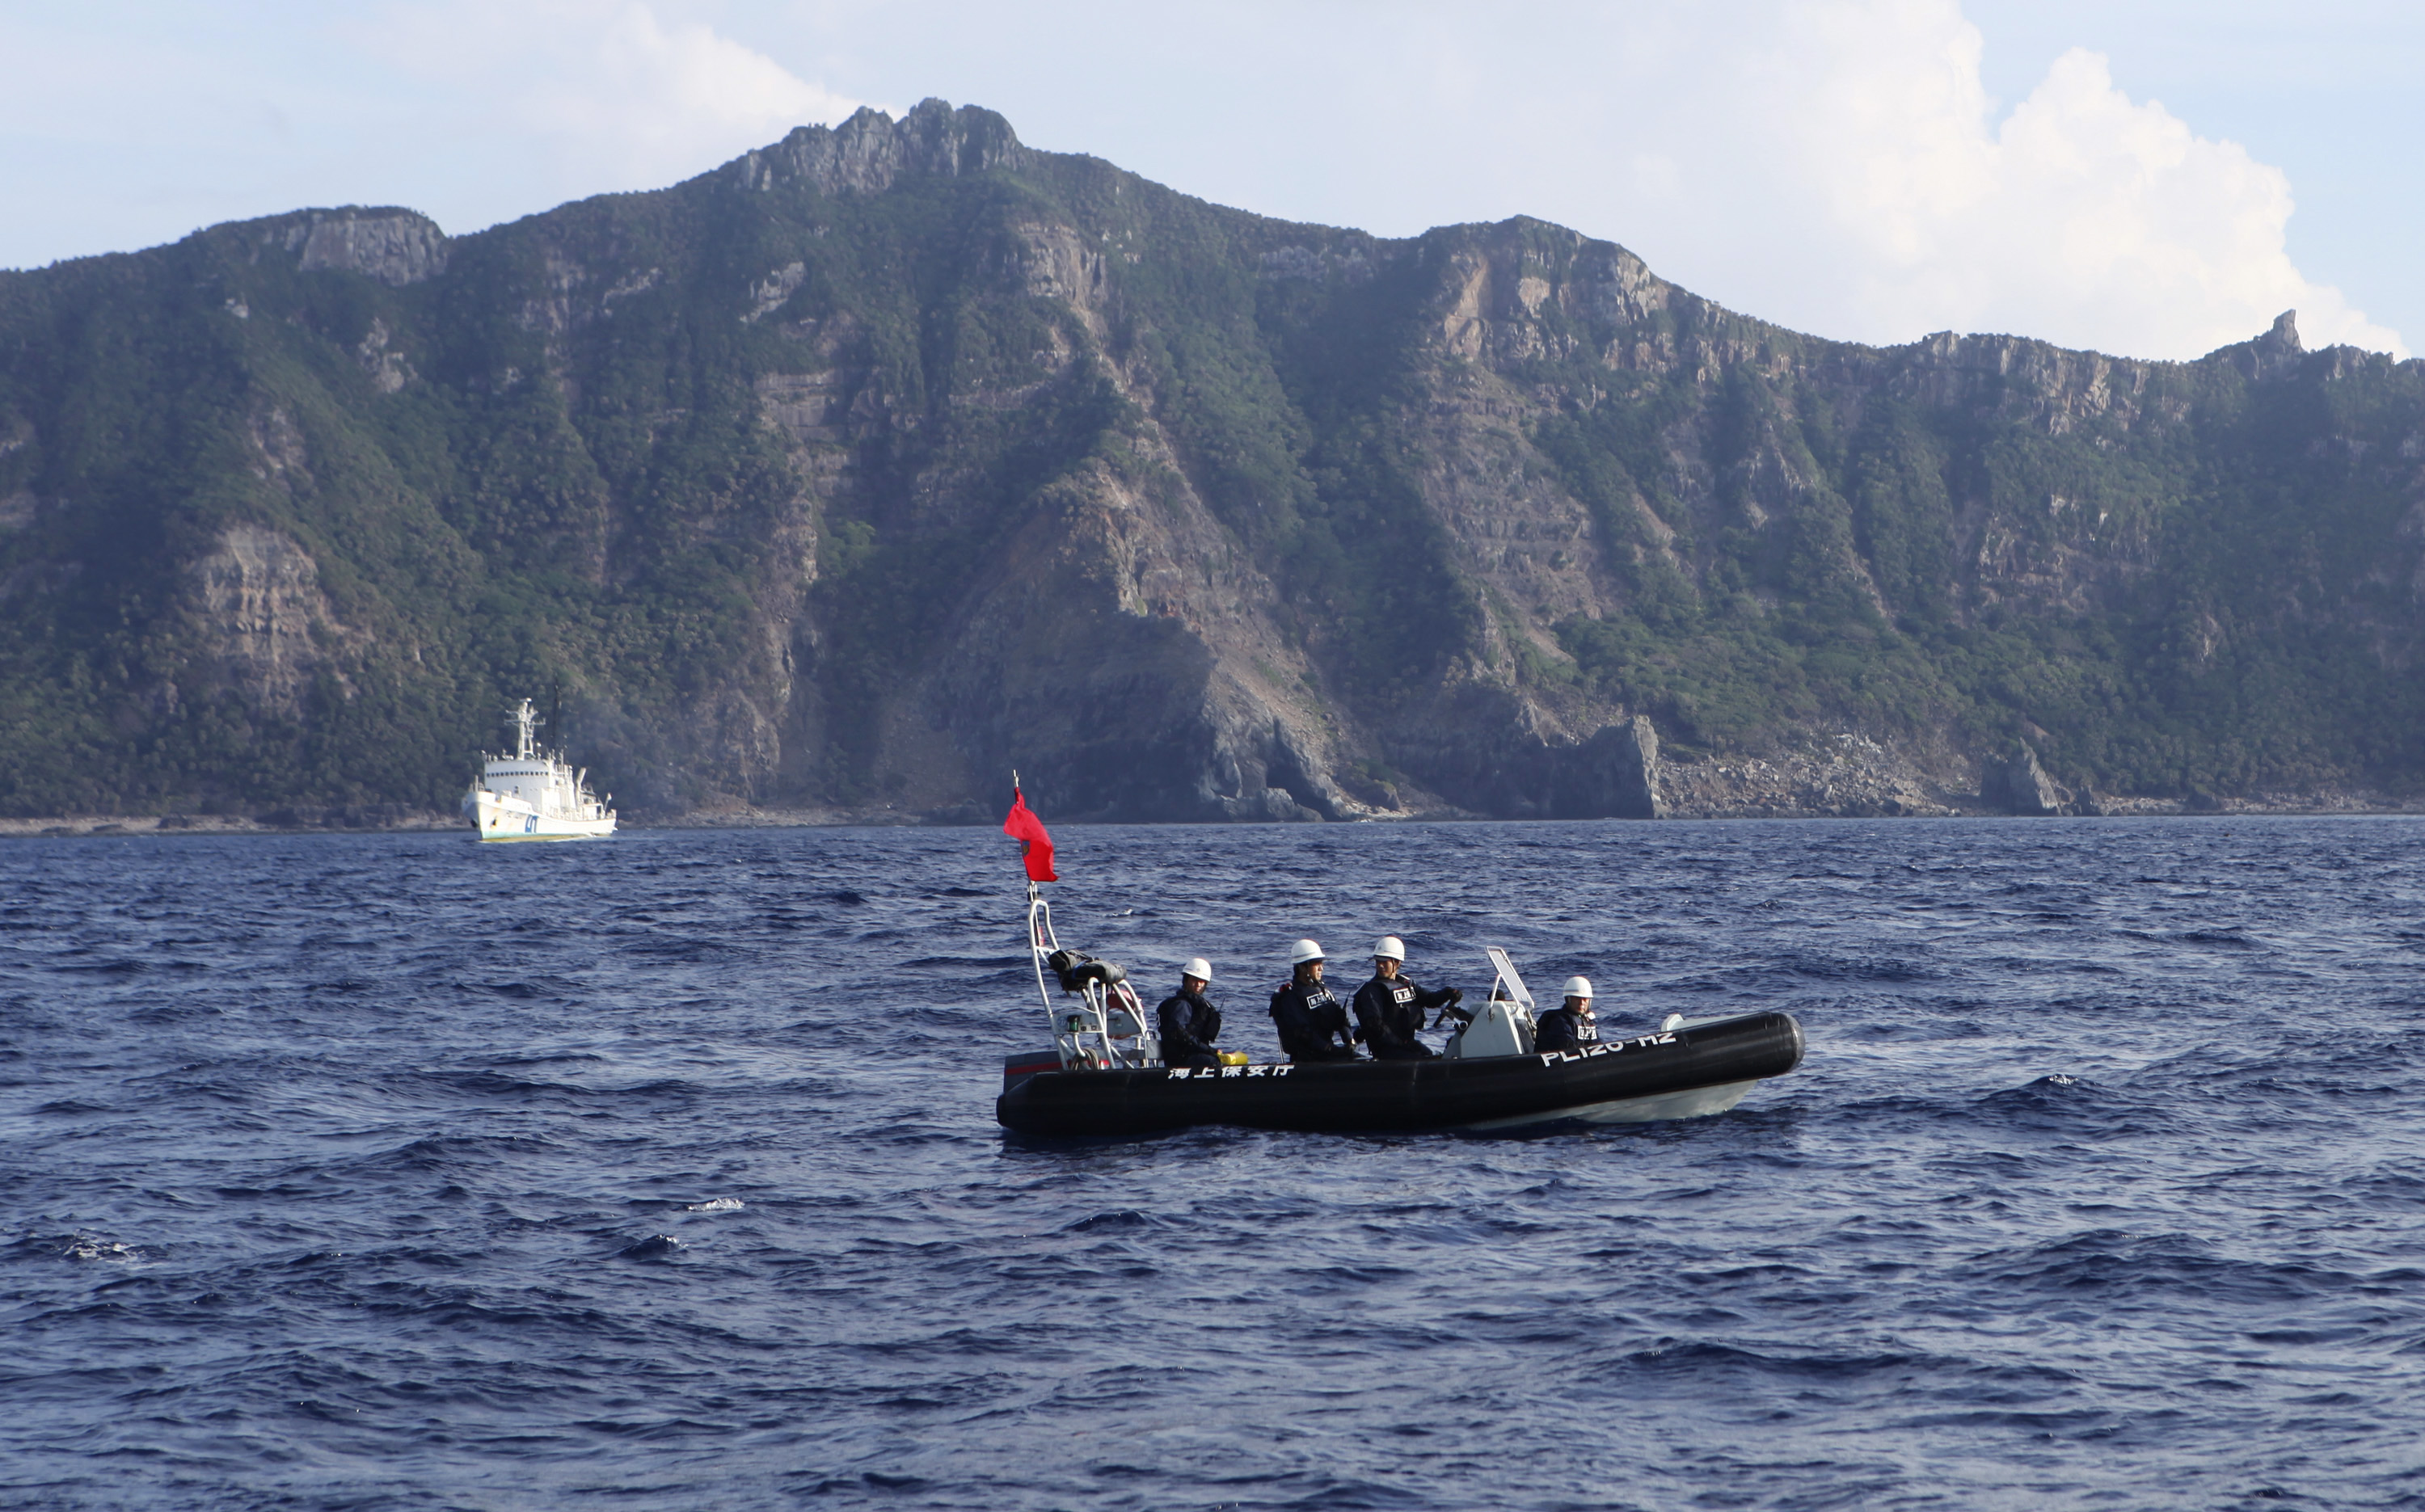 A Japan Coast Guard boat (front) and vessel sail as Uotsuri island, one of the disputed islands, called Senkaku in Japan and Diaoyu in China, is pictured in the background, in the East China Sea August 18, 2013. REUTERS/Ruairidh Villar